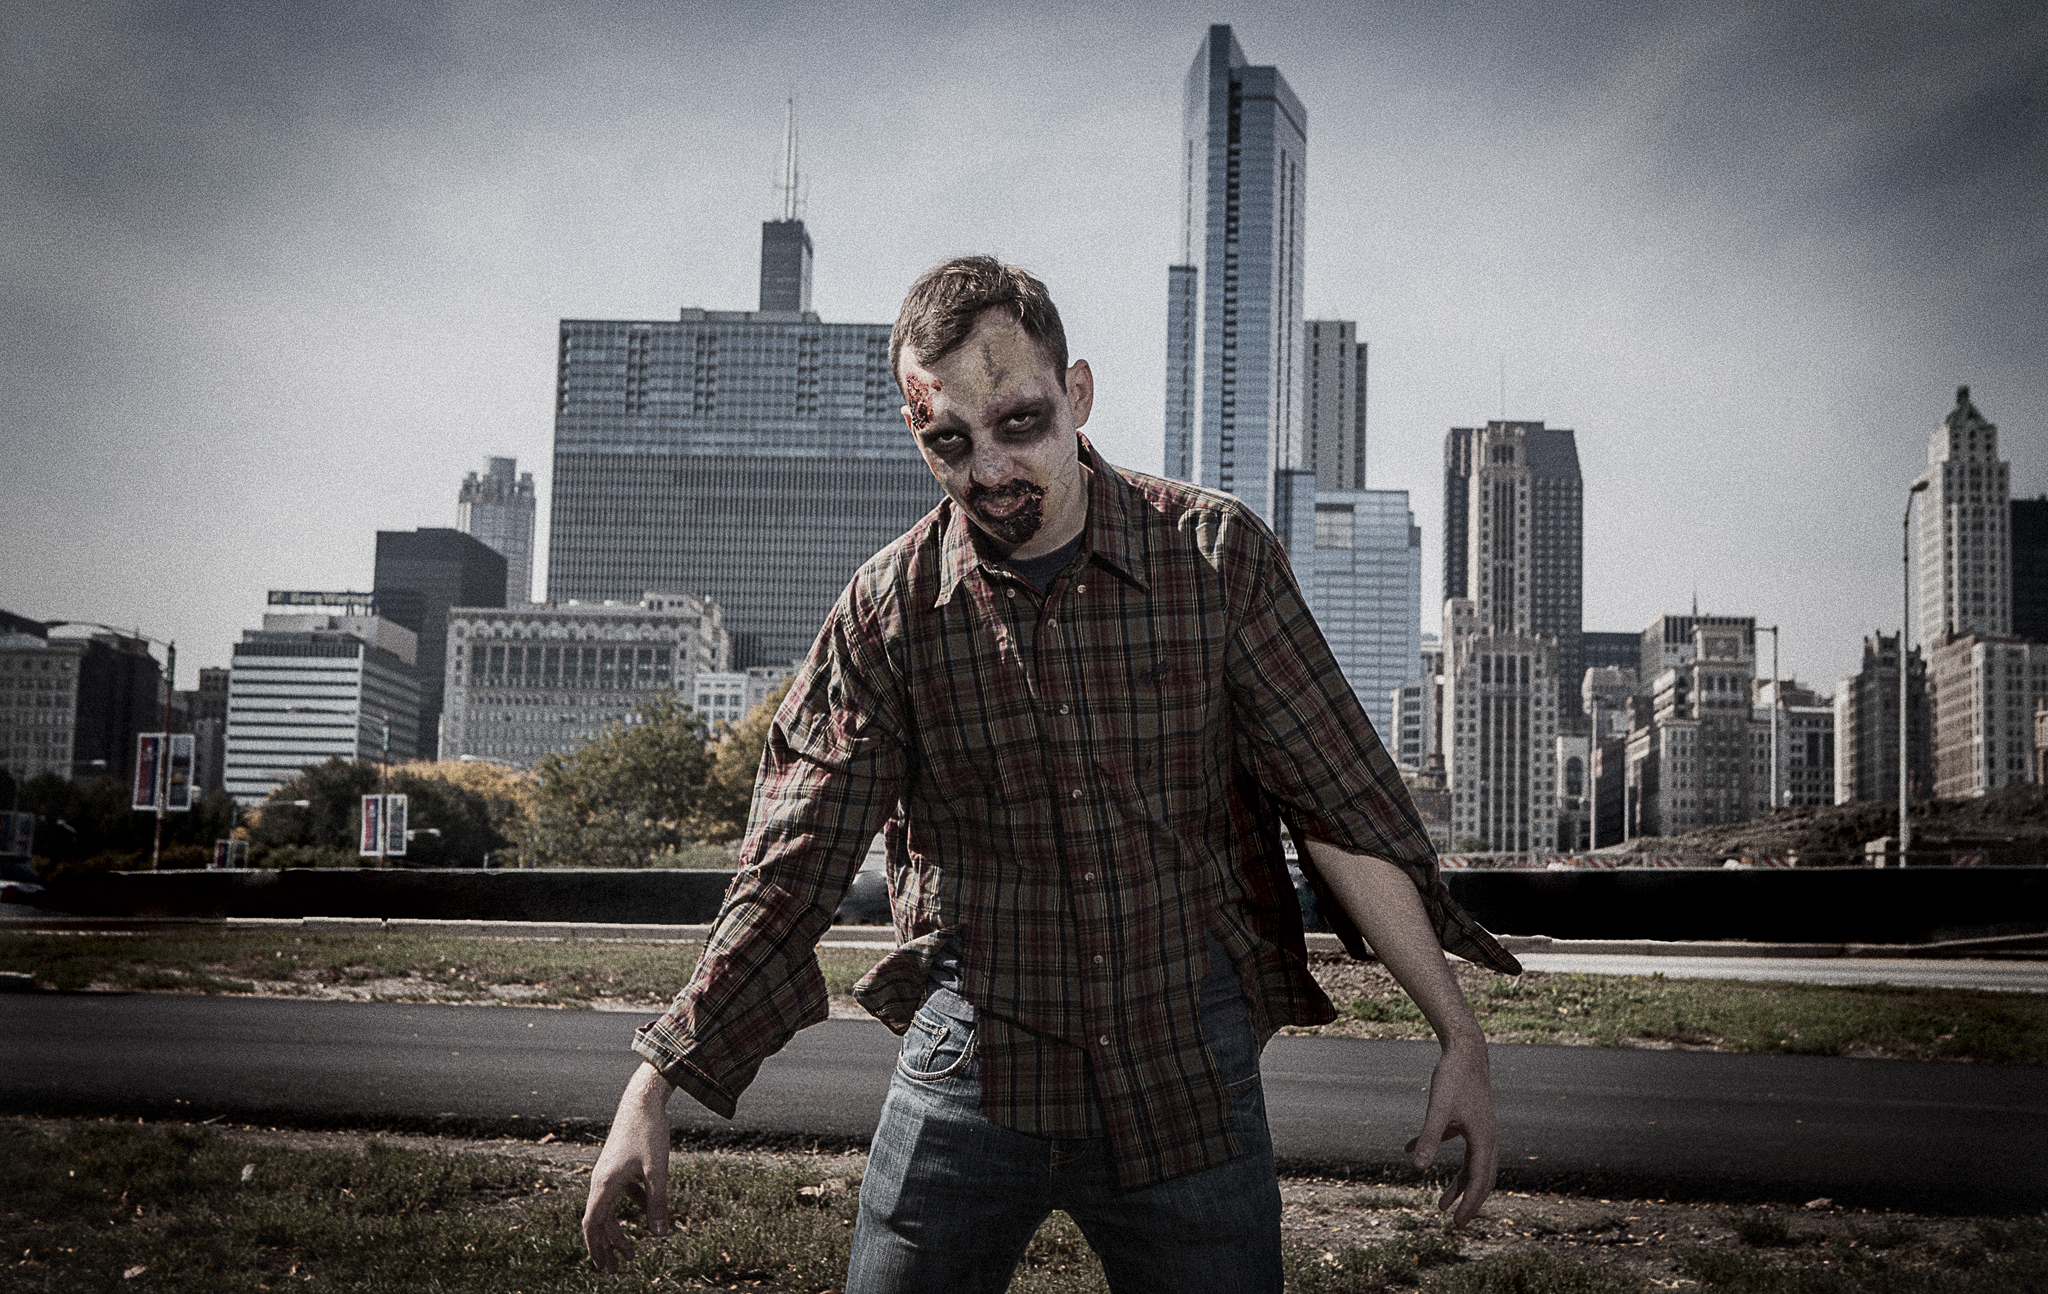 What would you do if zombies invaded Chicago?